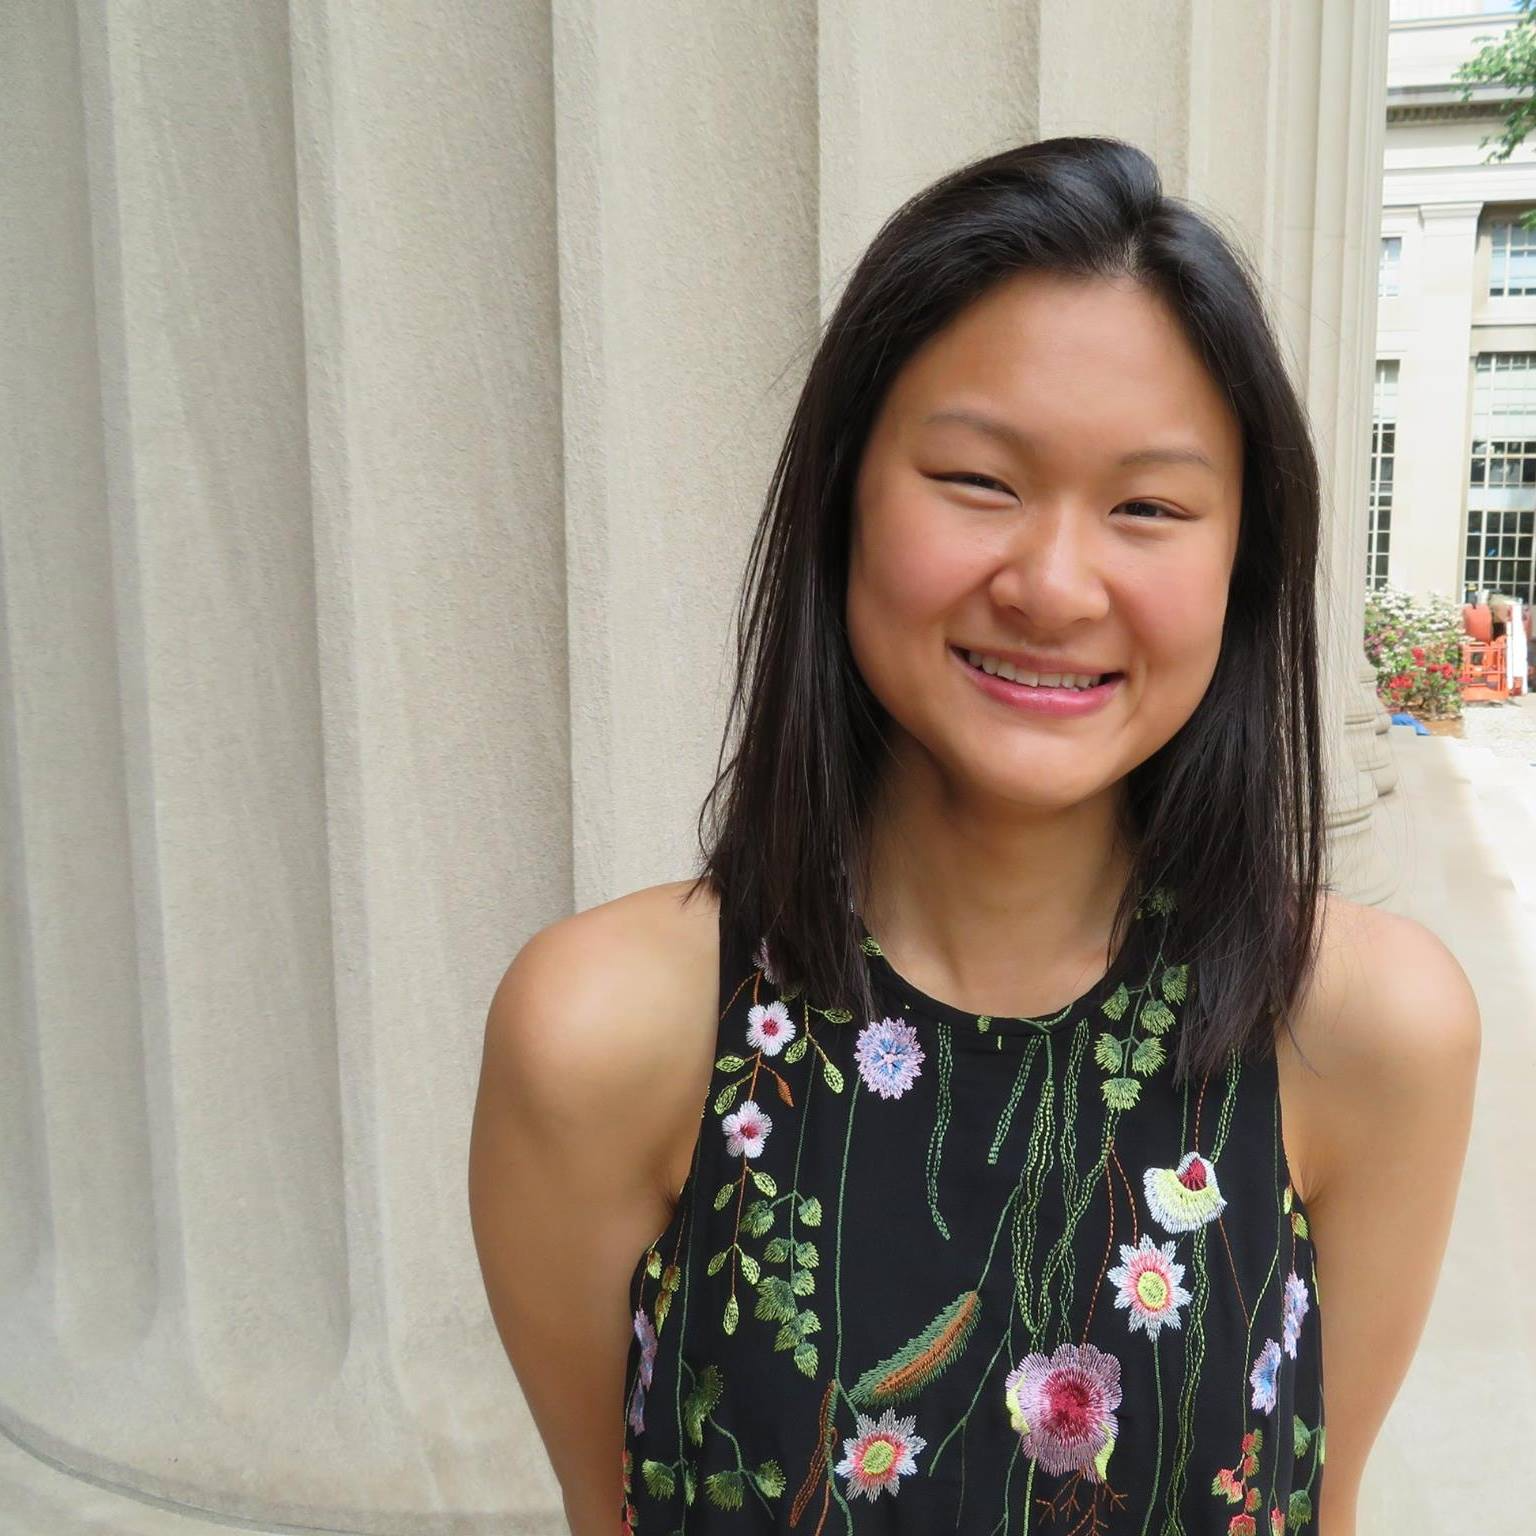 Zi-Ning Choo - zic2001@med.cornell.eduGraduate Fellow, Tri-Institutional MD-PhD Program (Rotation, Summer 2019)B.S. Chemical Engineering & Computer Science, MIT, 2017Current position: Graduate Fellow, Pe'er Lab, Sloan Kettering Institute